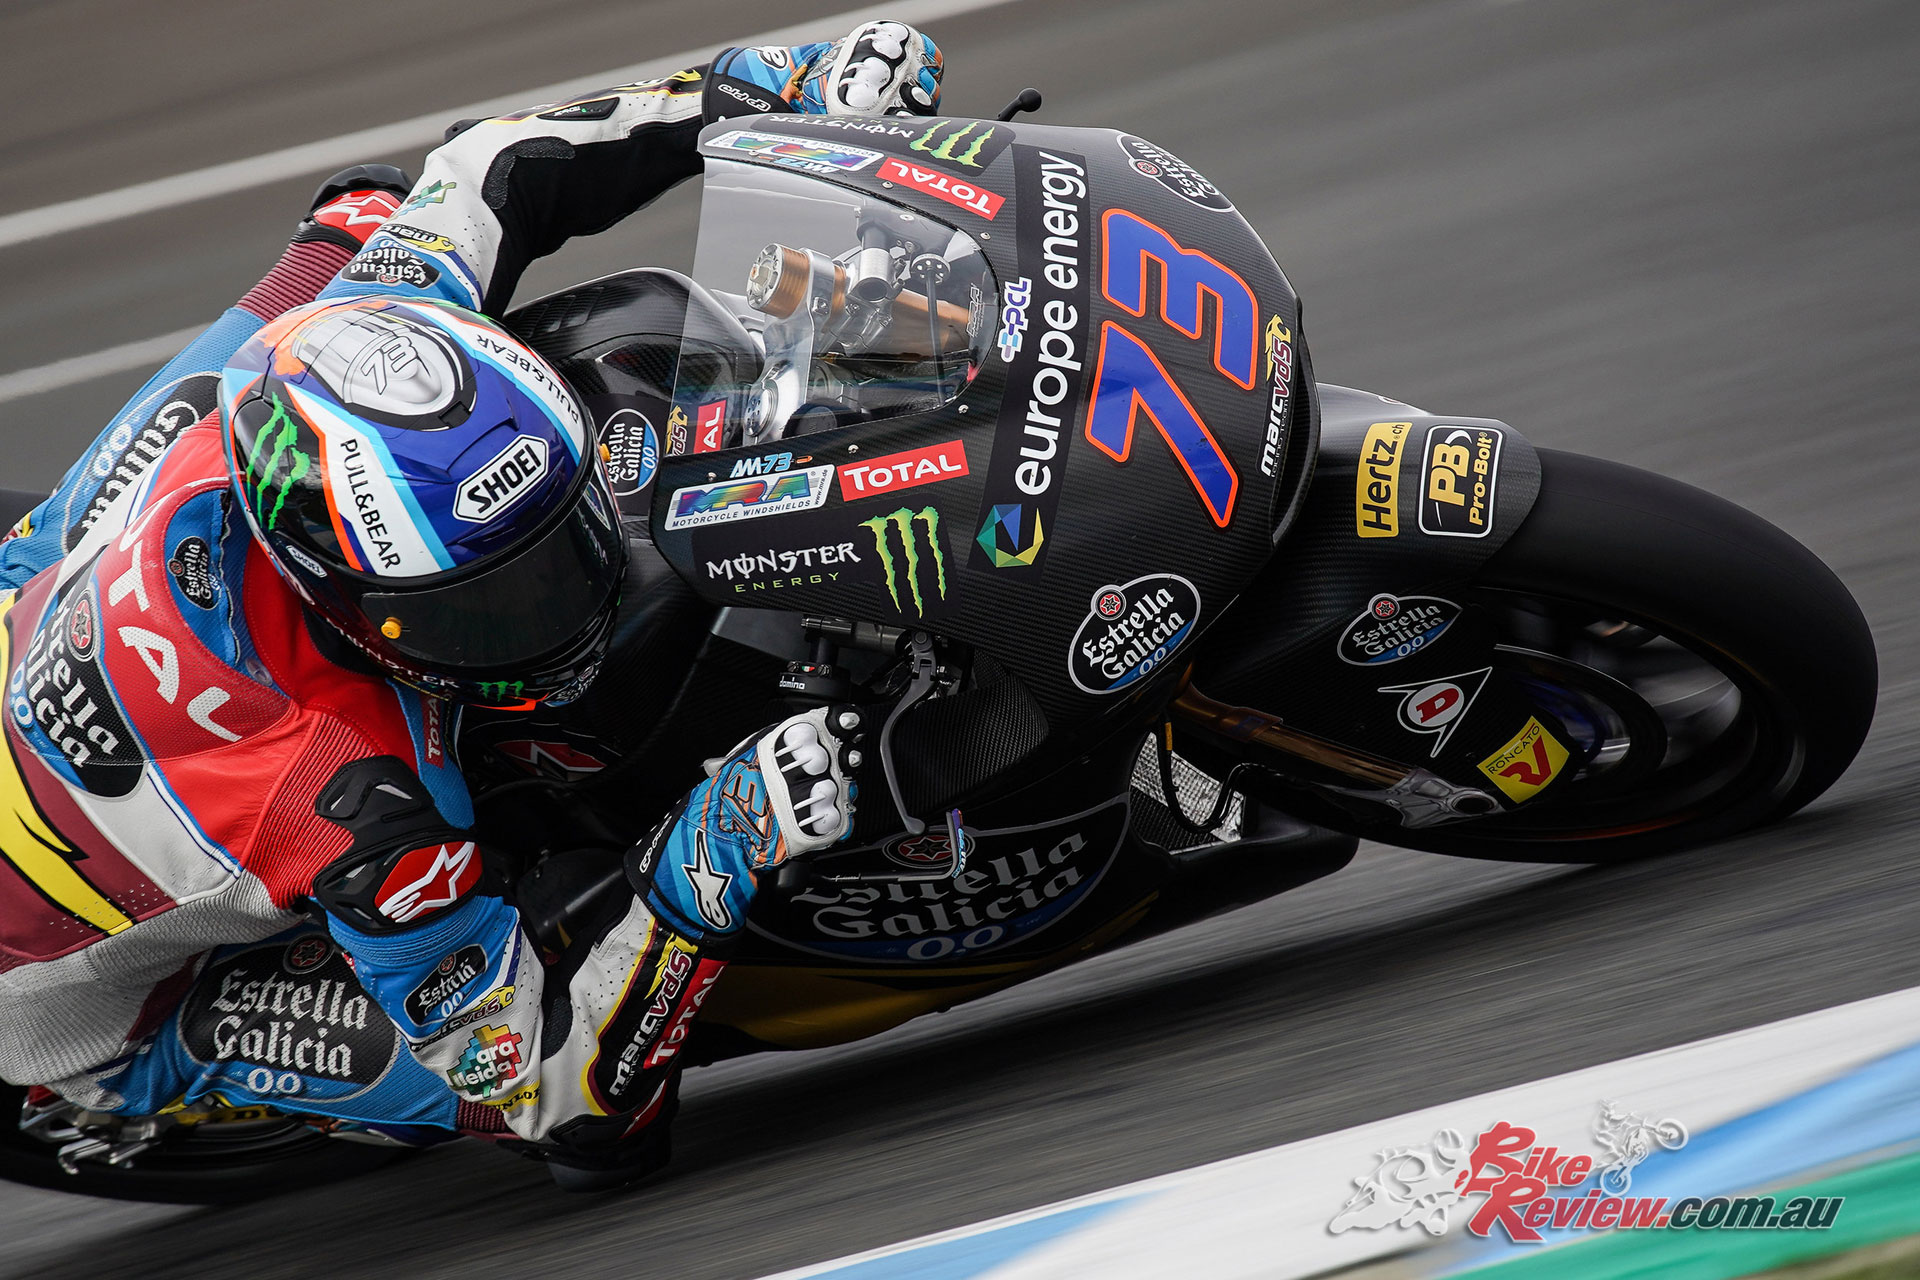 Alex Marquez on top in Moto2 as Arbolino reigns Moto3 - Bike Review